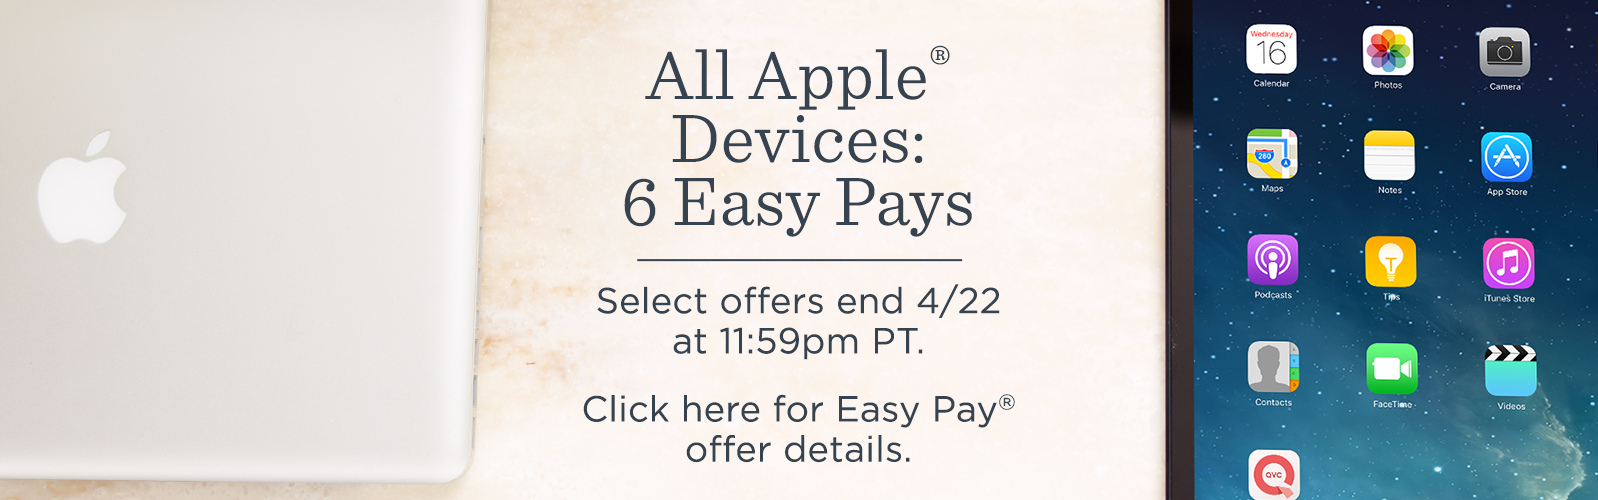 All Apple® Devices: 6 Easy Pays  Select offers end 4/22 at 11:59pm PT.  Click here for Easy Pay® offer details.